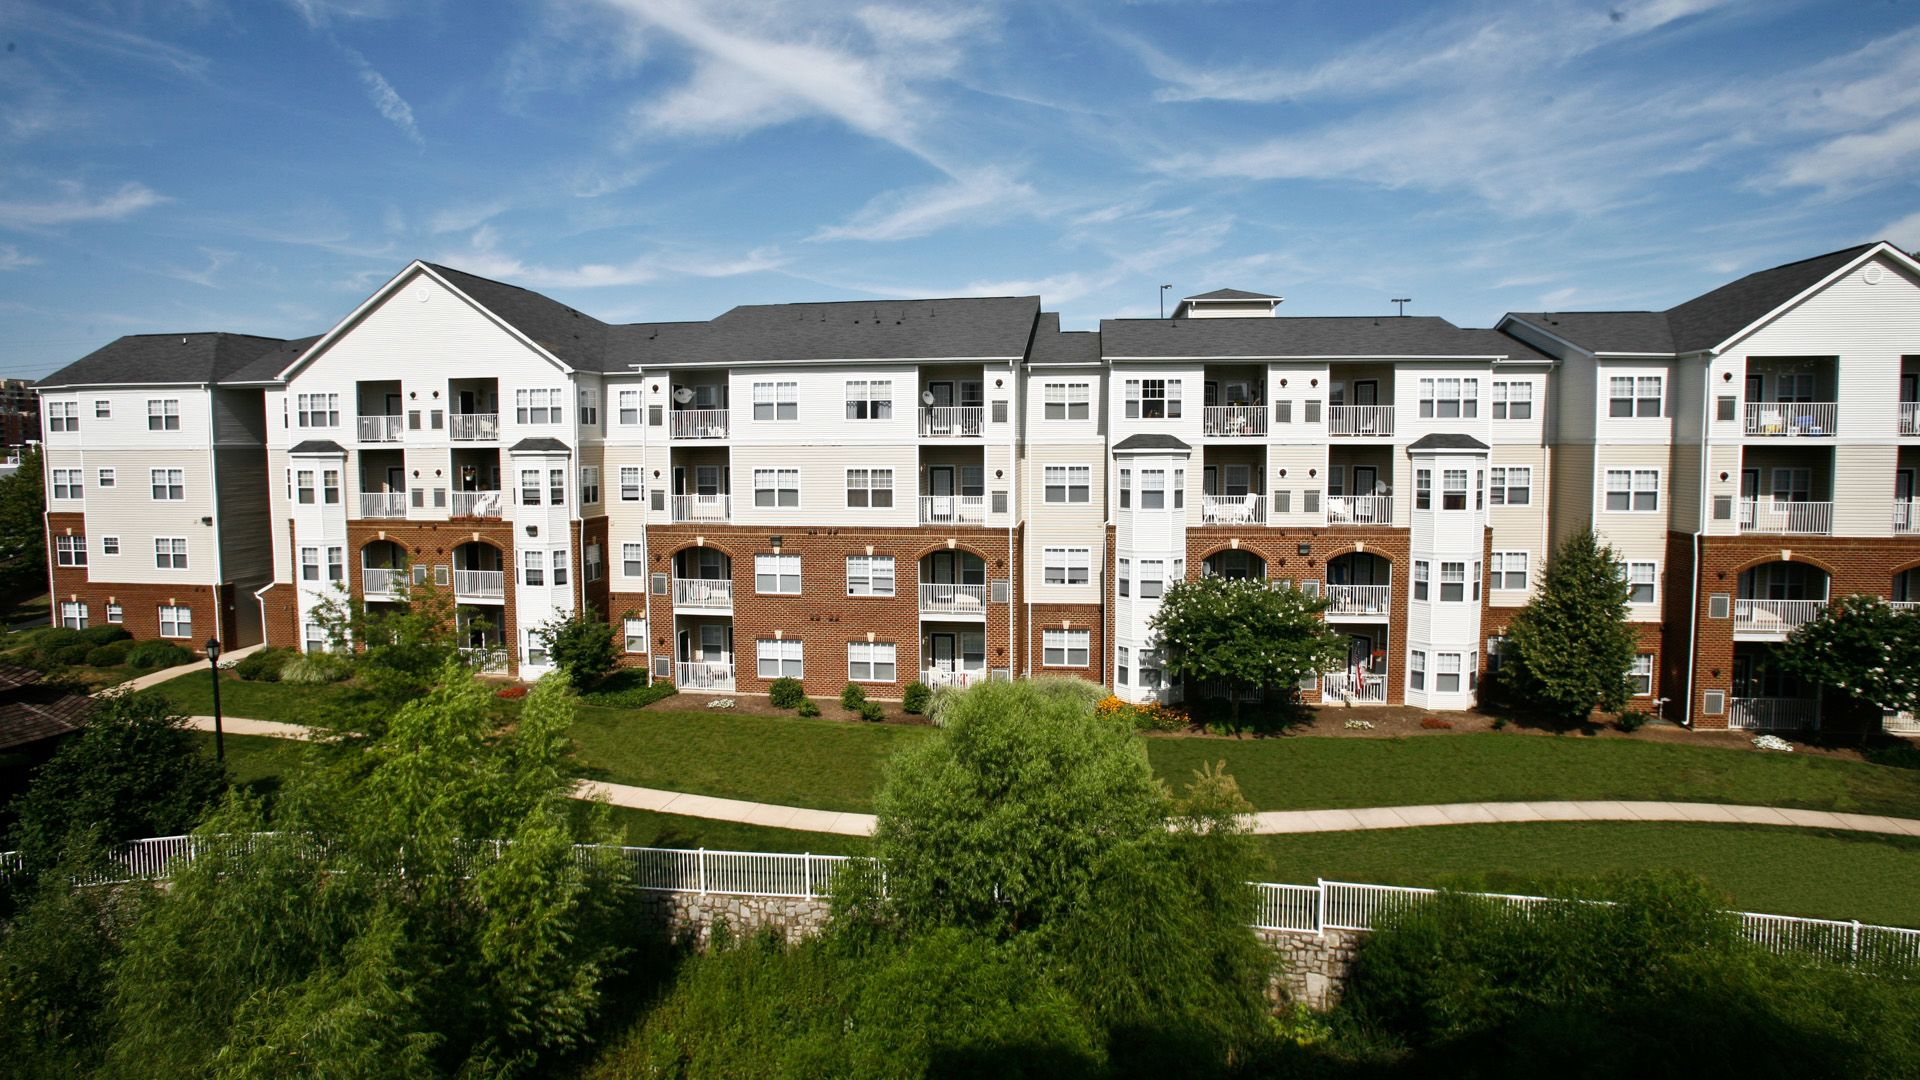 Reserve at Potomac Yard Apartments - Building